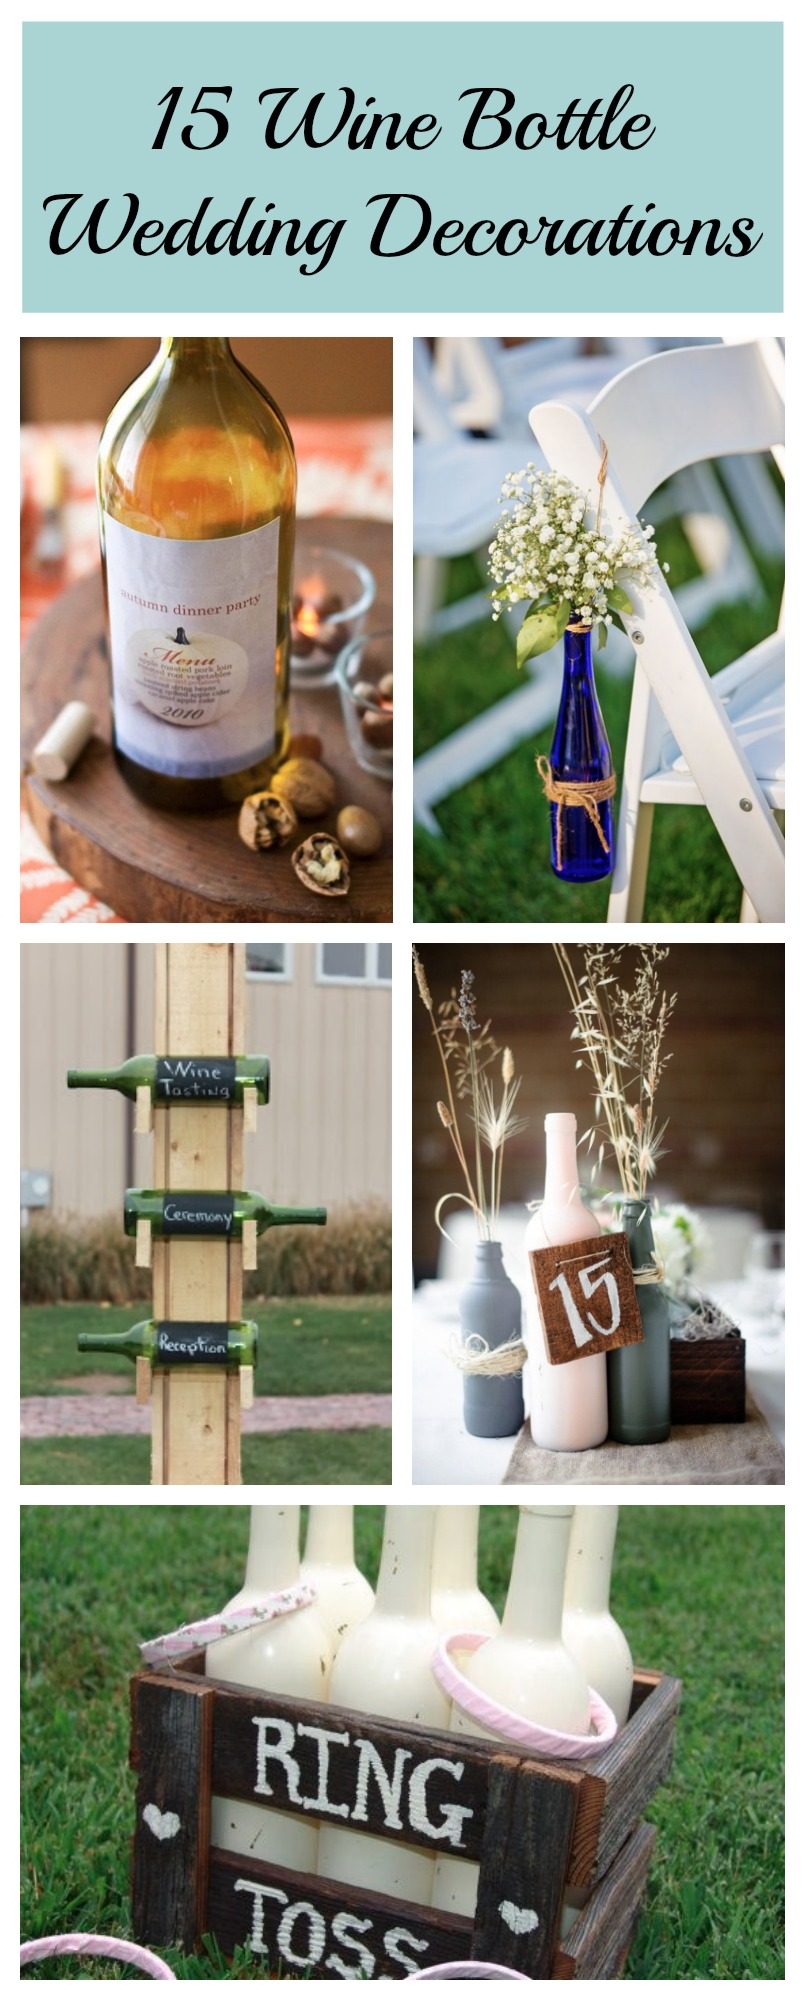 15 ways to decorate your wedding with wine bottles for Wine bottle ideas for weddings